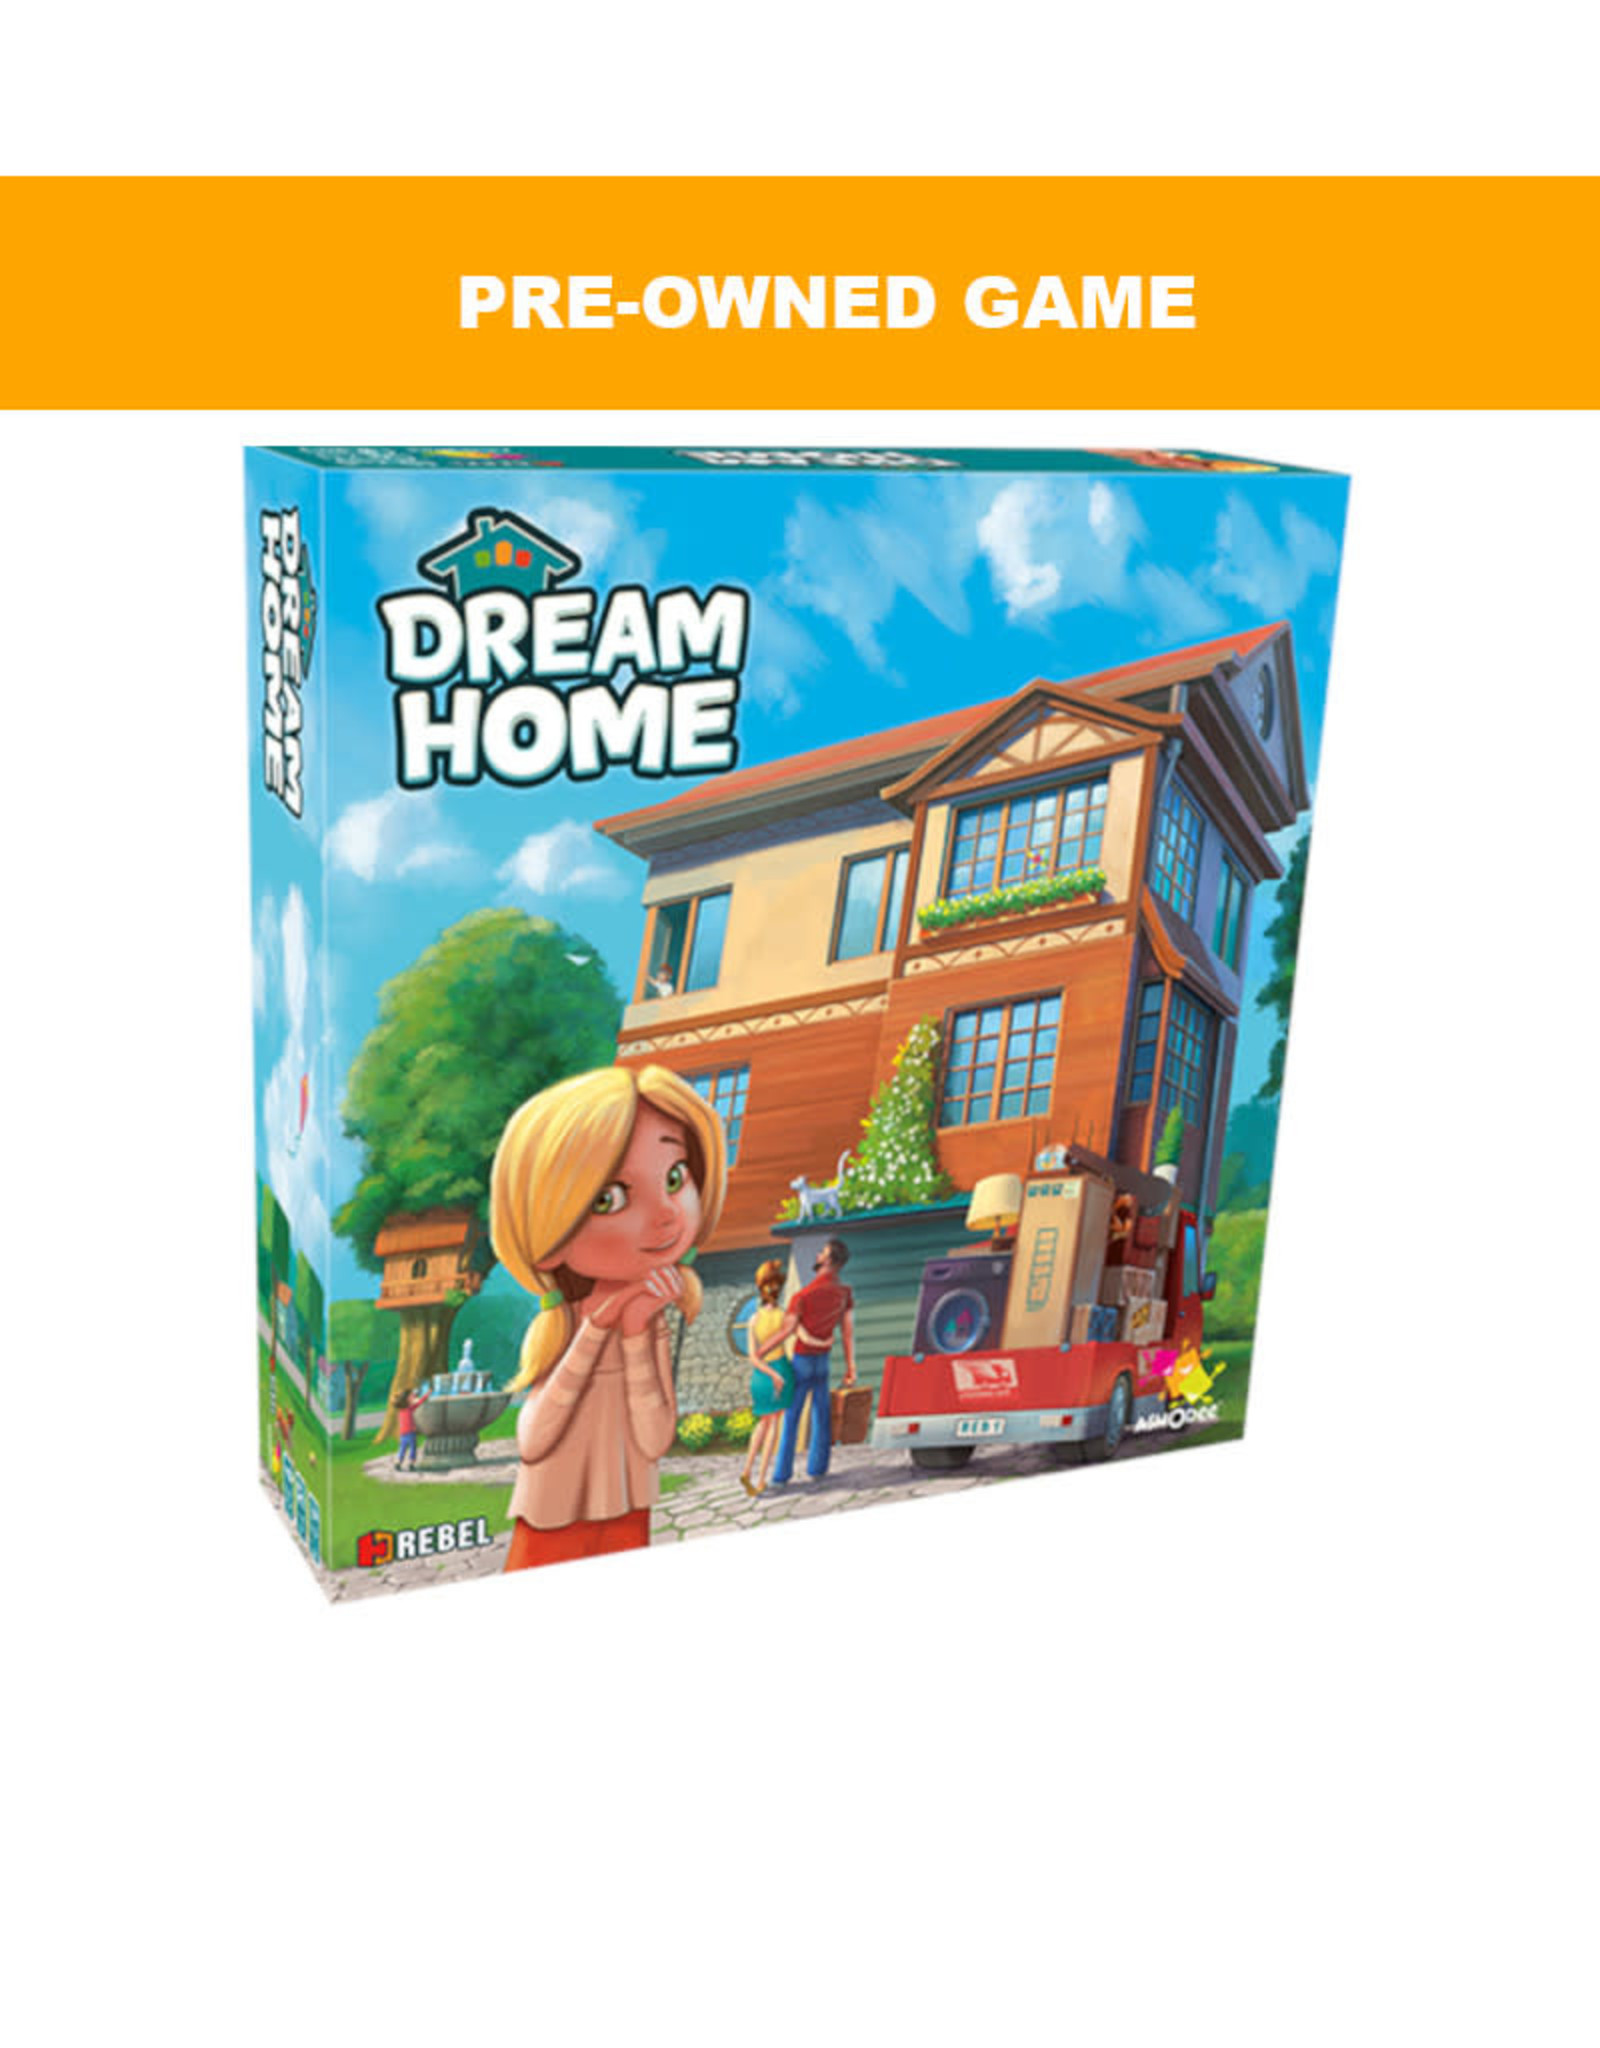 (Pre-Owned  Game) Dream home